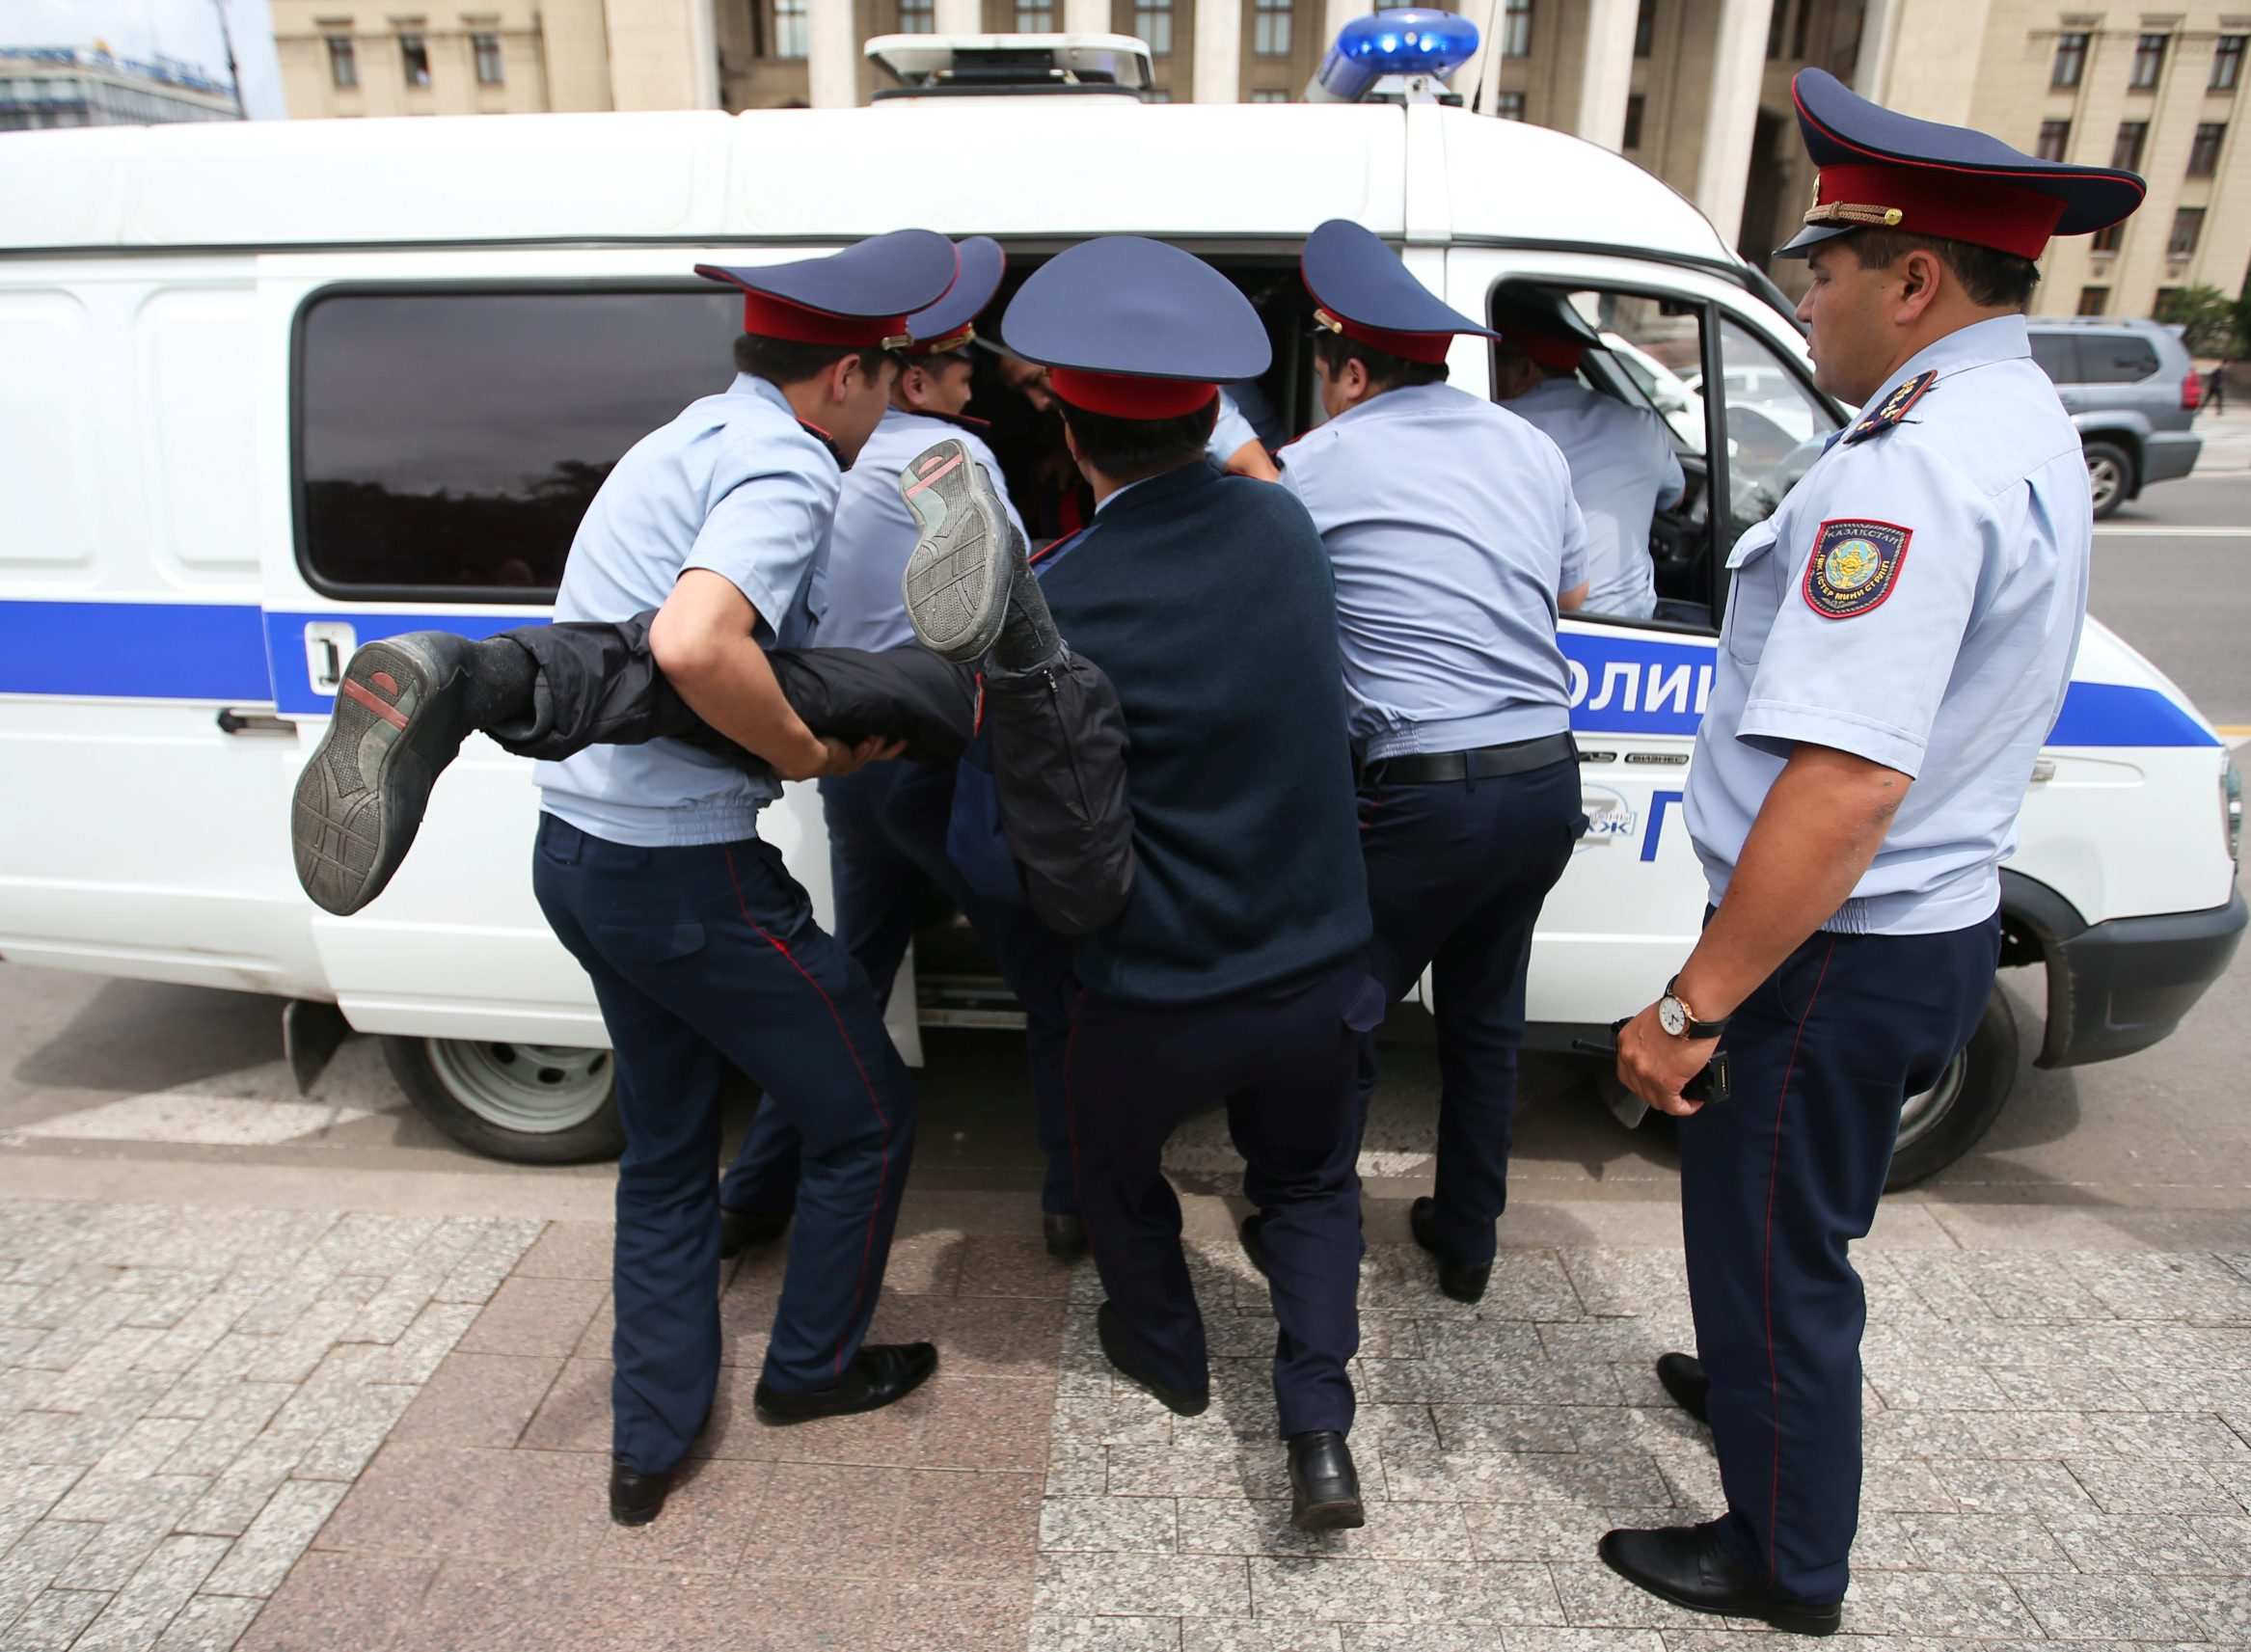 Police officers detain an opposition supporter during a protest against presidential election results, in Almaty, Kazakhstan, June 10, 2019. REUTERS/PavelMikheyev